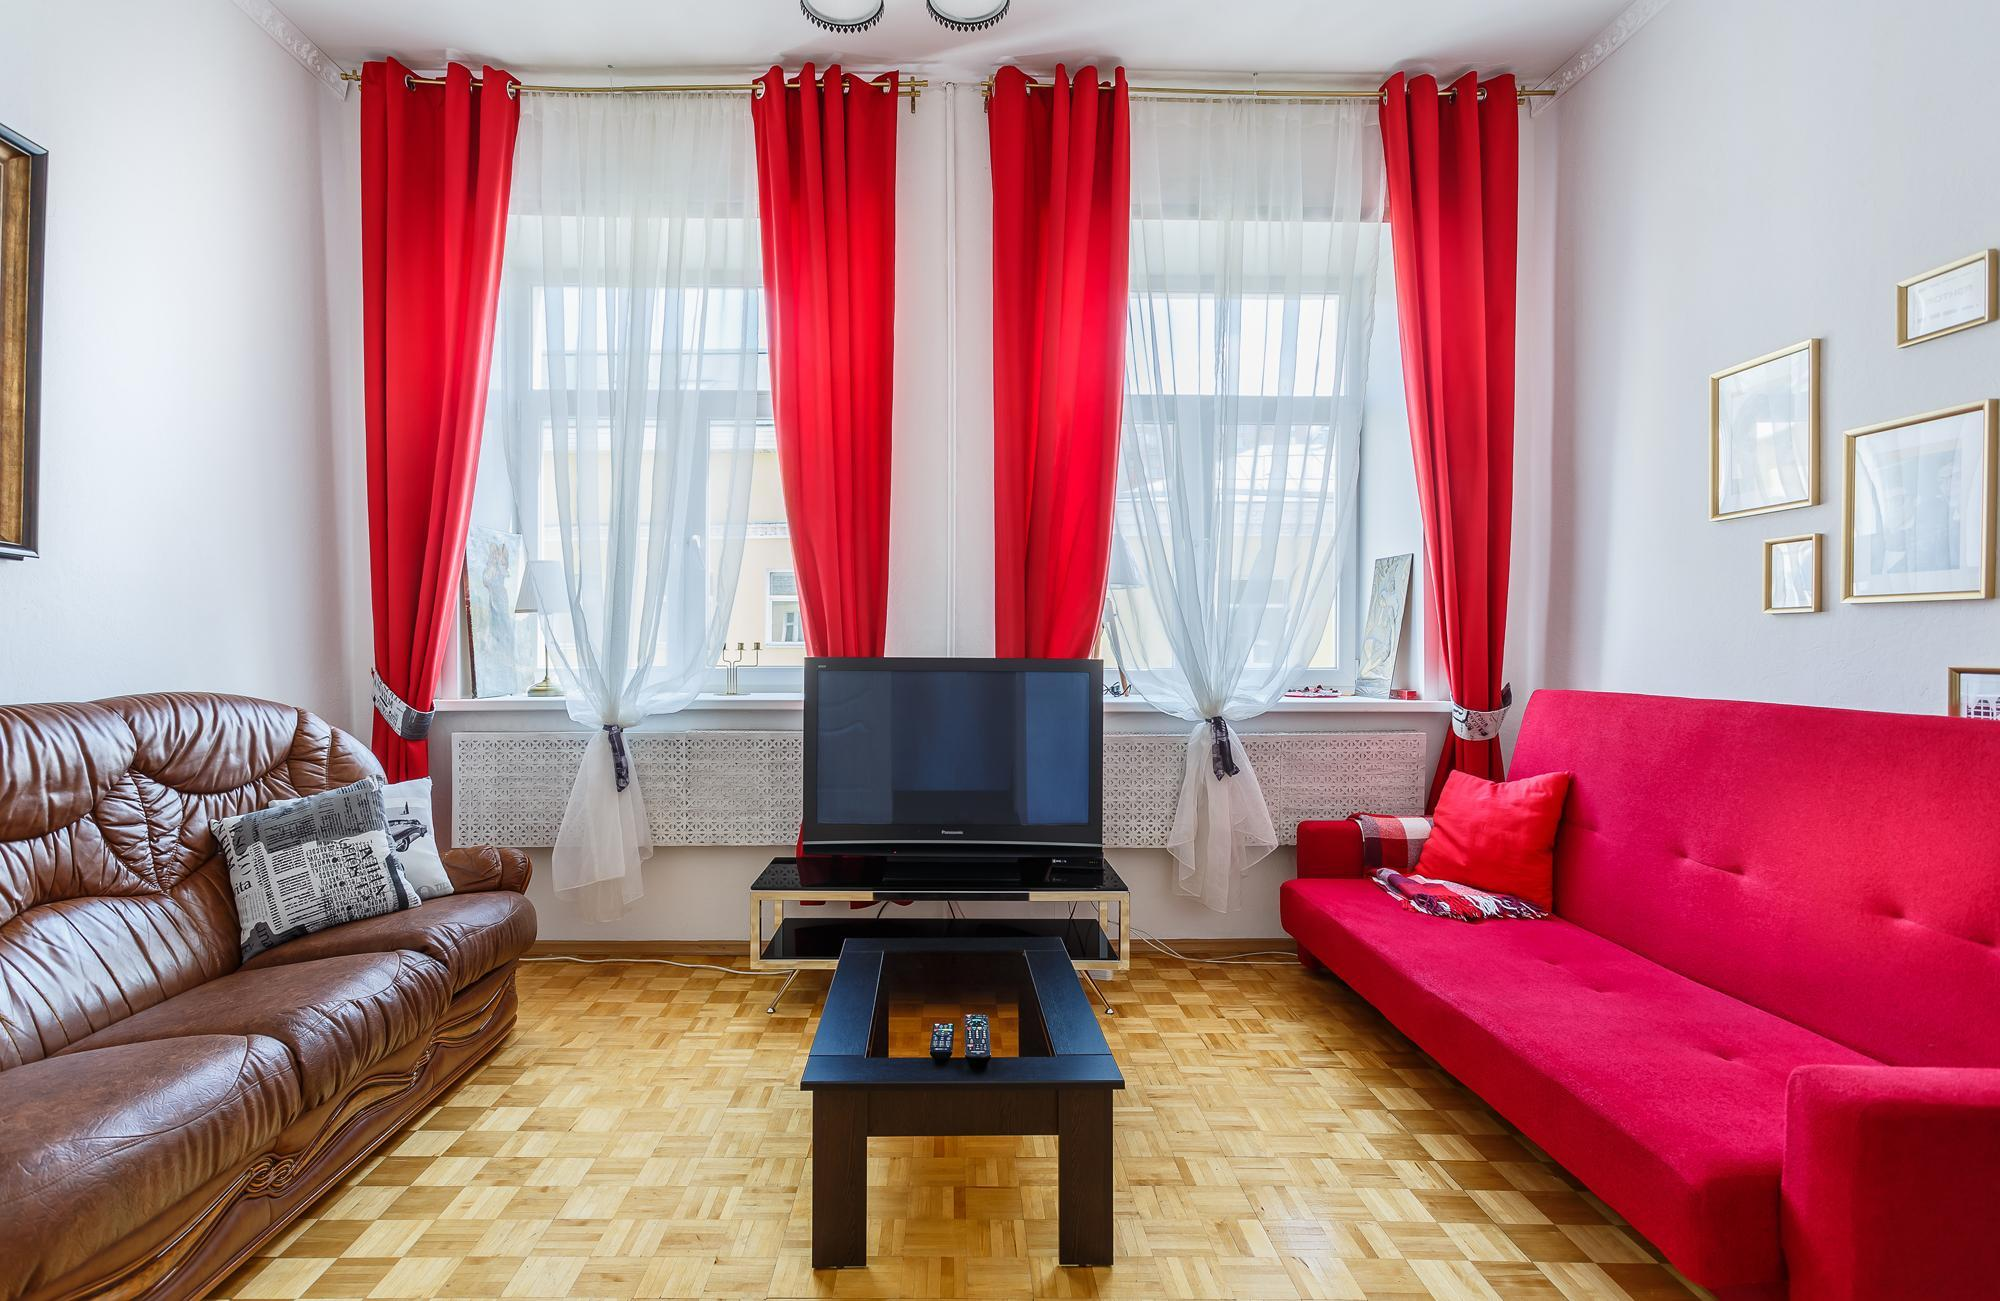 ART-DEKO APARTMENT On The Moscow River Embankment Moscow Russia